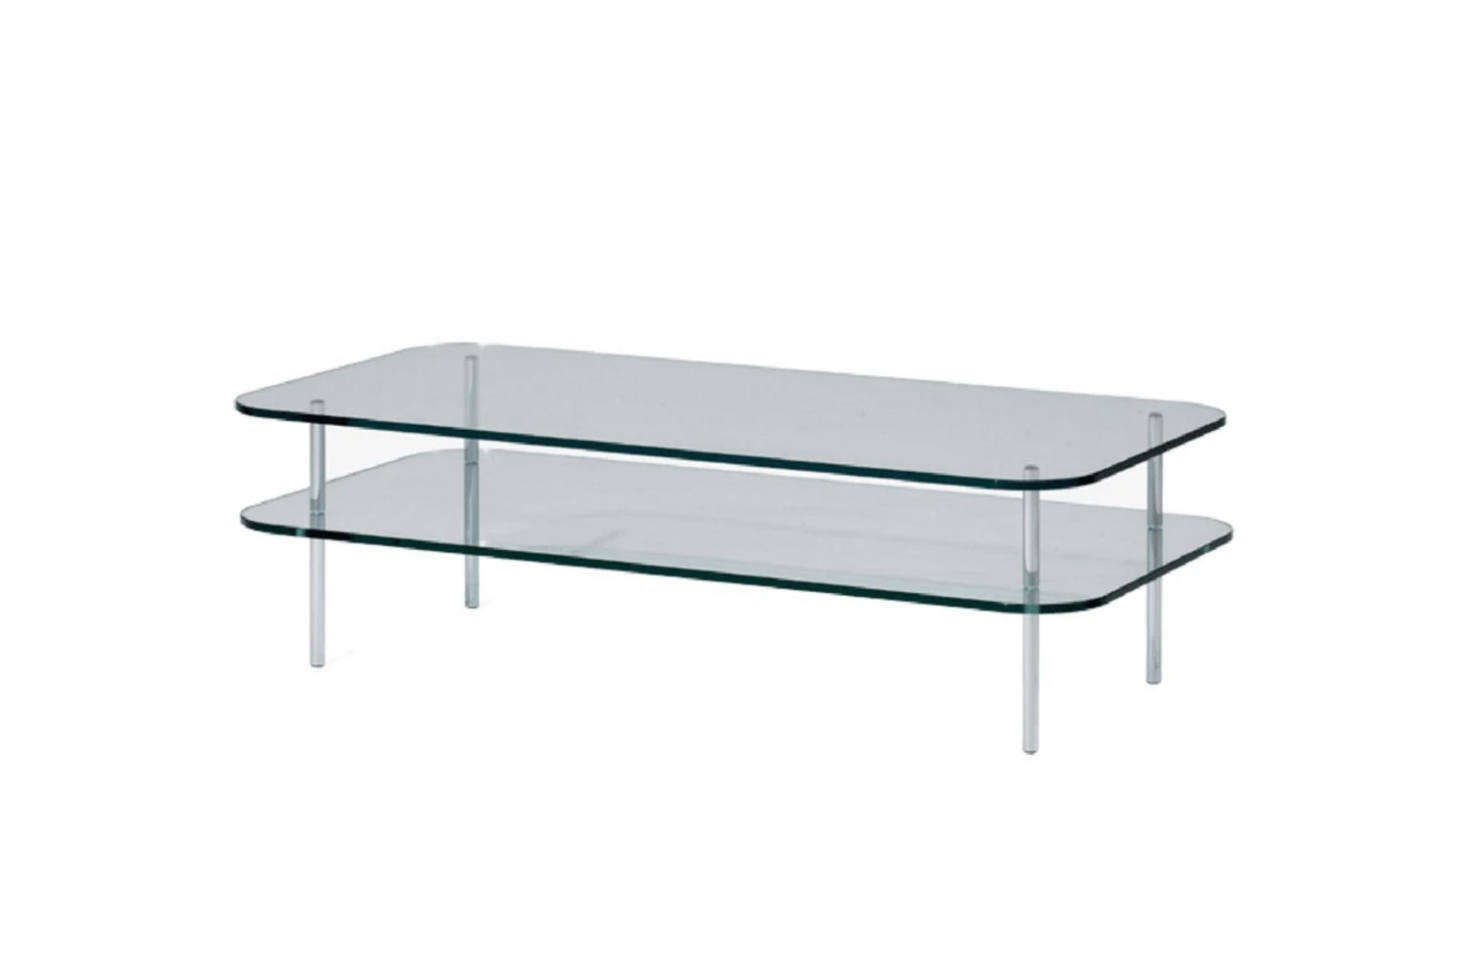 The SCP Sax Rectangular Coffee Table is $995 at Horne.